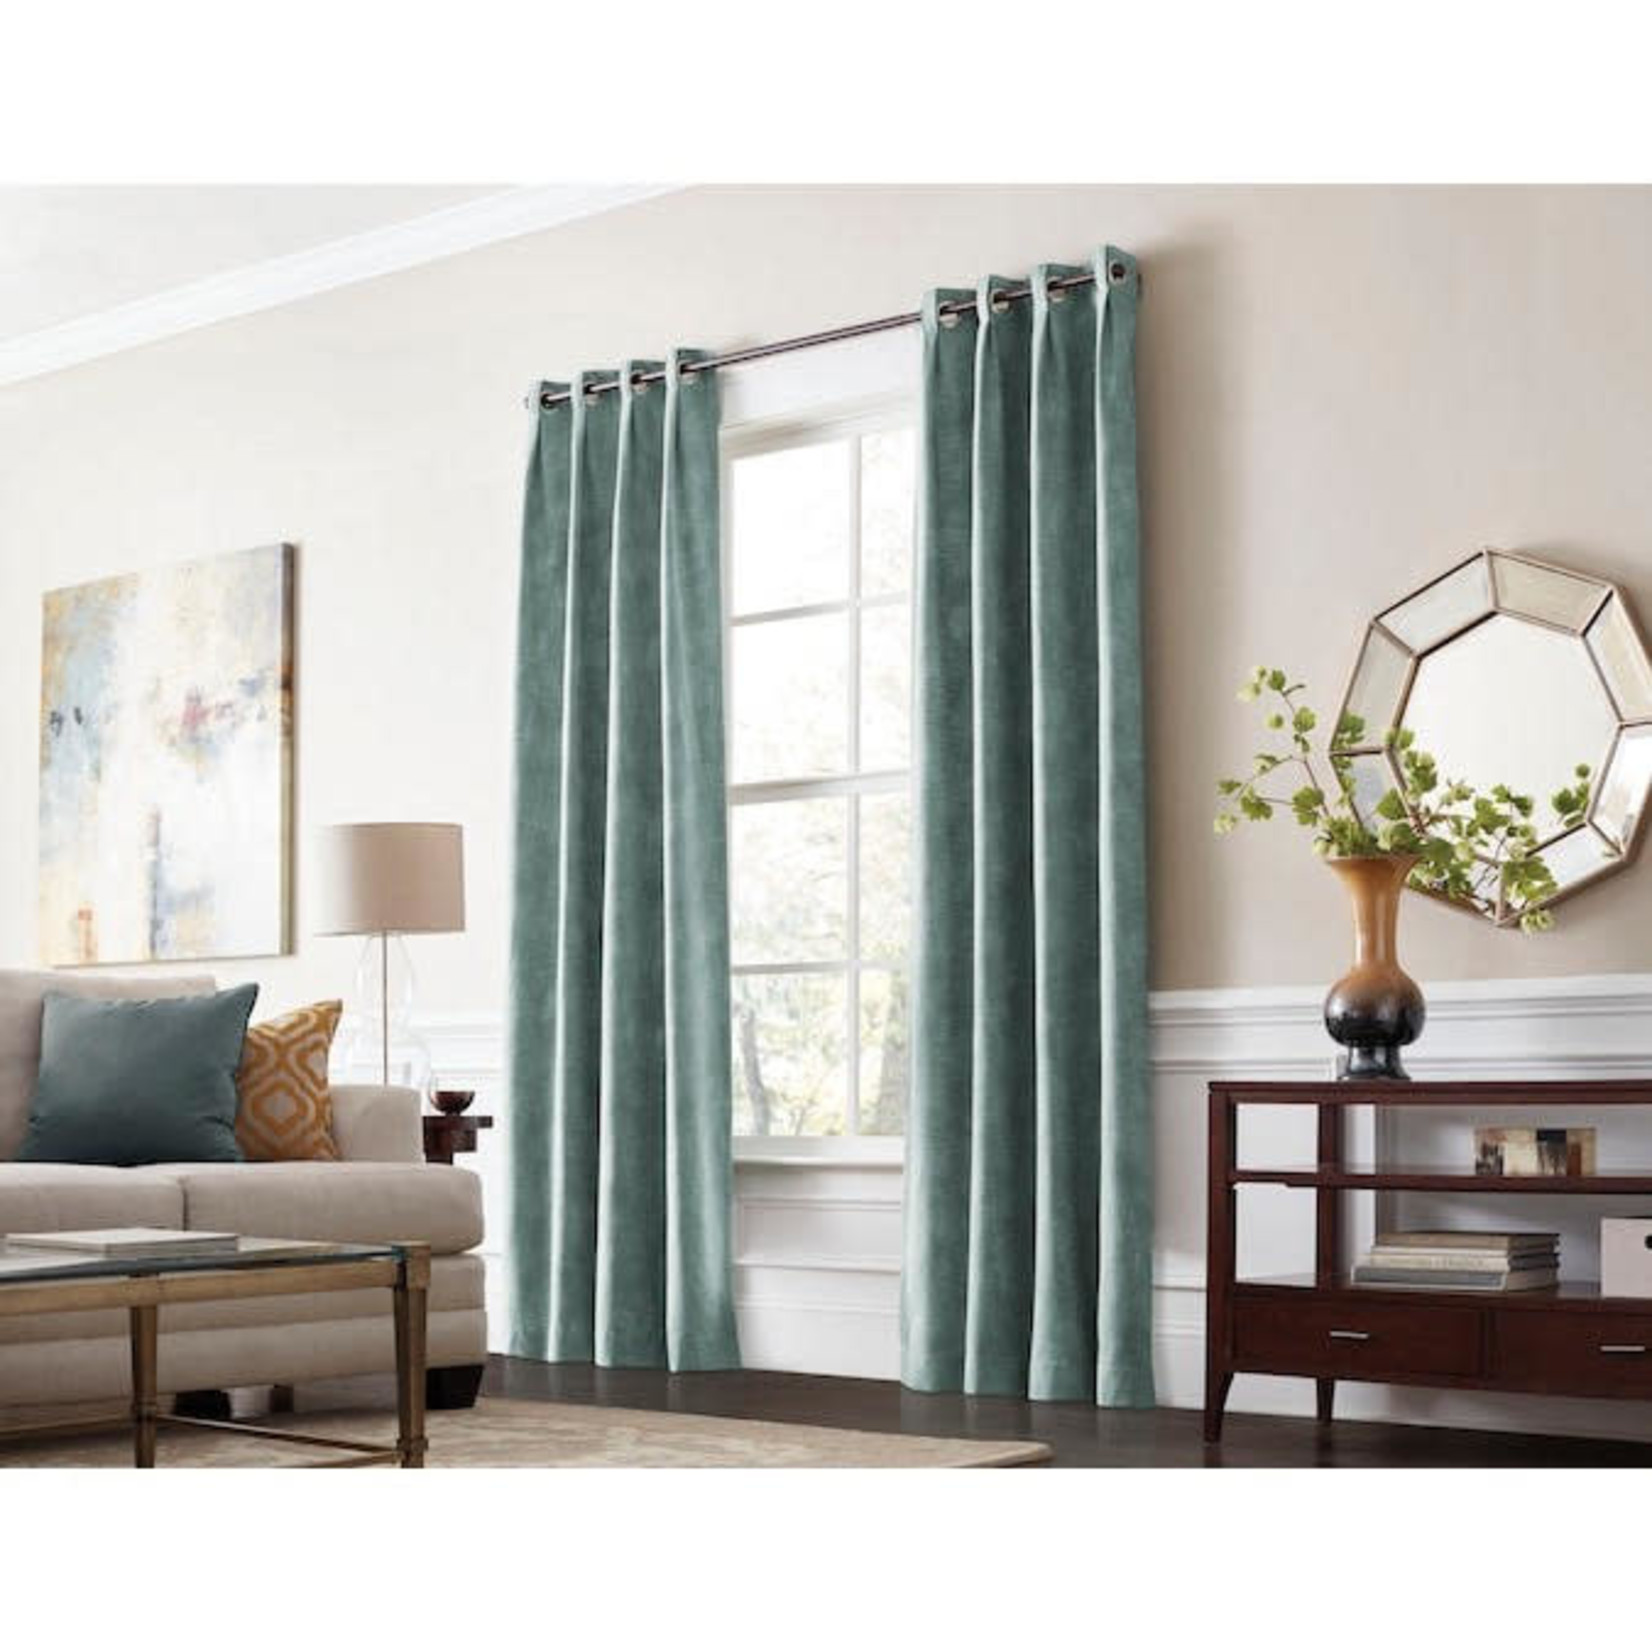 10601 Allen+Roth 84-in Mineral Polyester Room Darkening Thermal Lined Grommet Single Curtain Panel